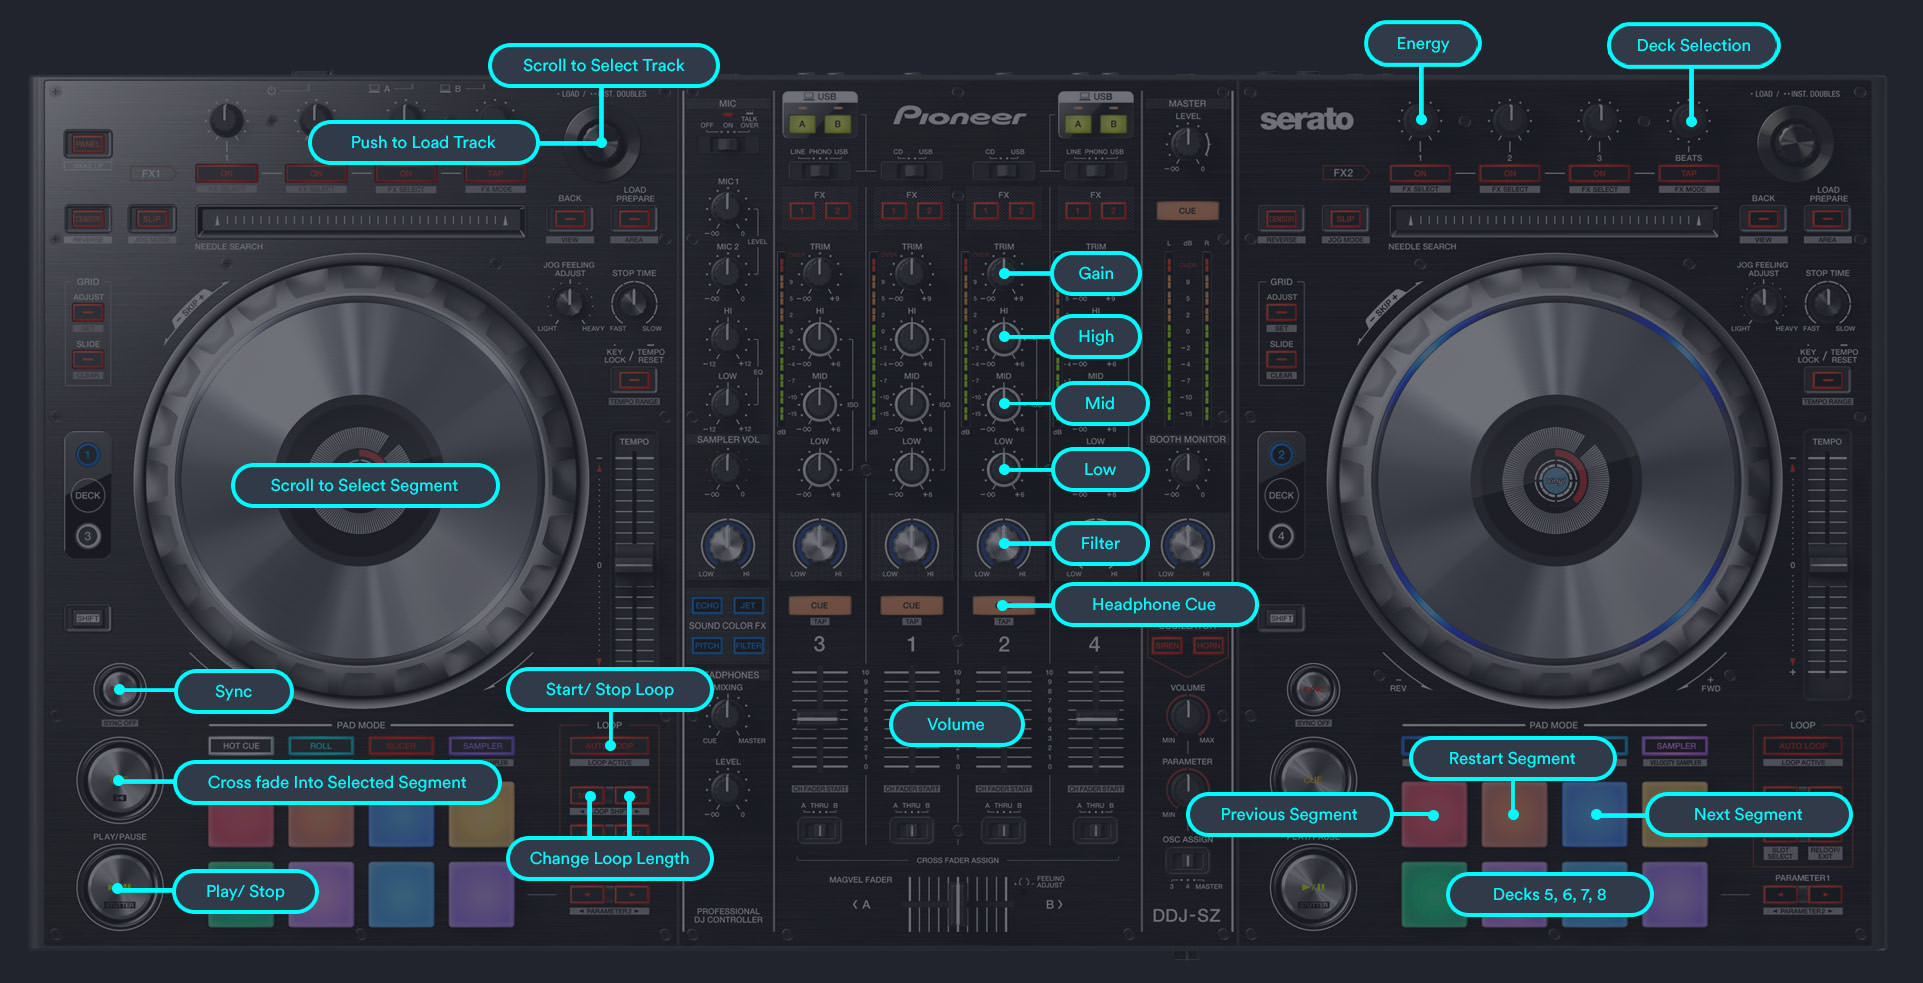 Pioneer controllers with Flow 8 Deck